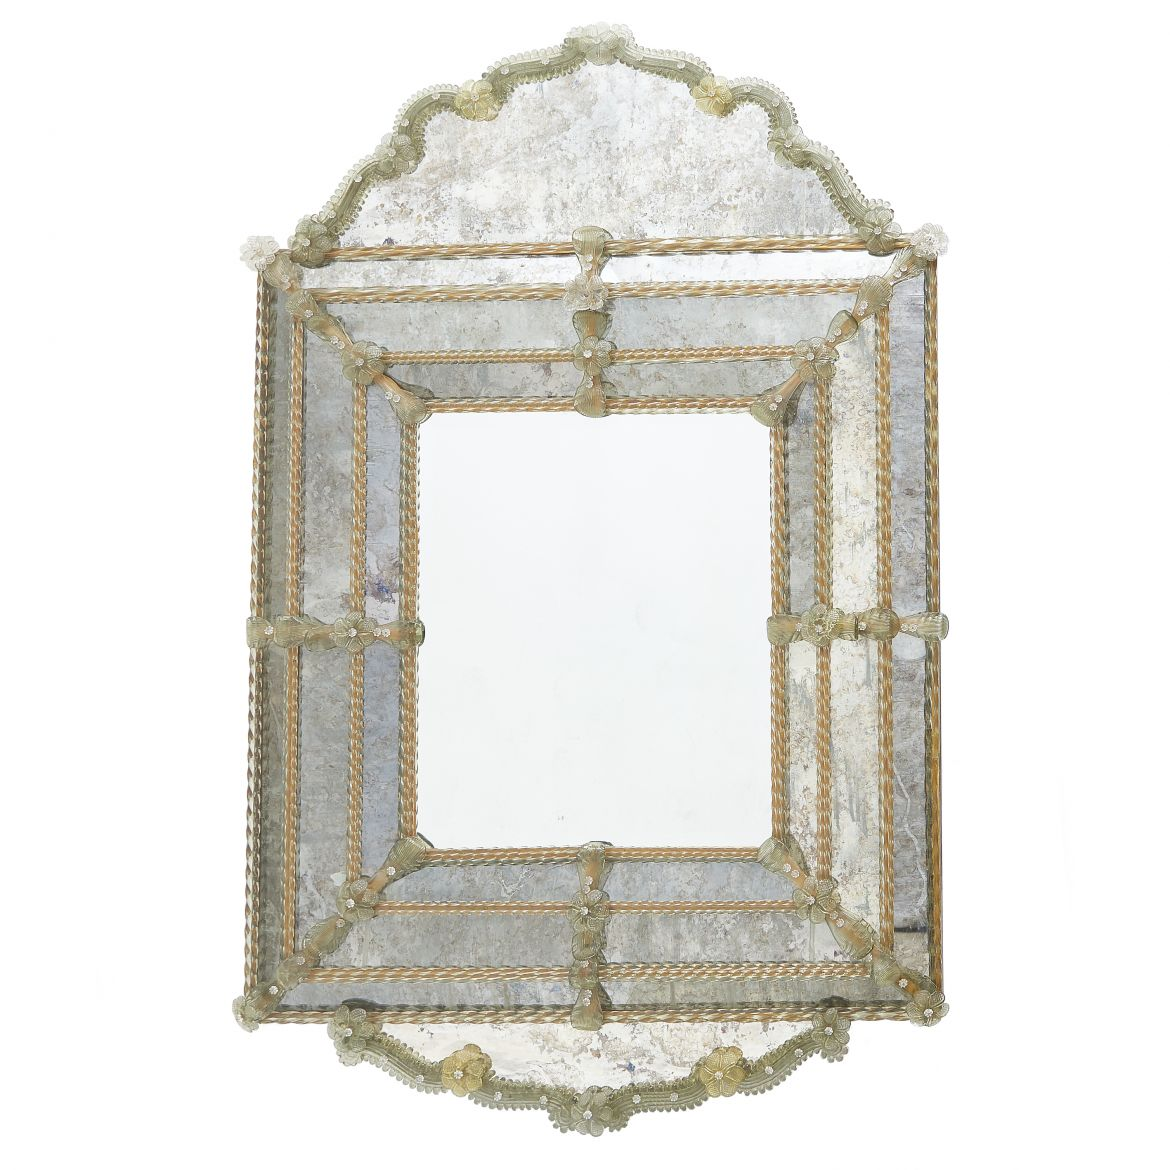 Antiqued Glass Venetian Arched Top Mirror With Glass Flowers